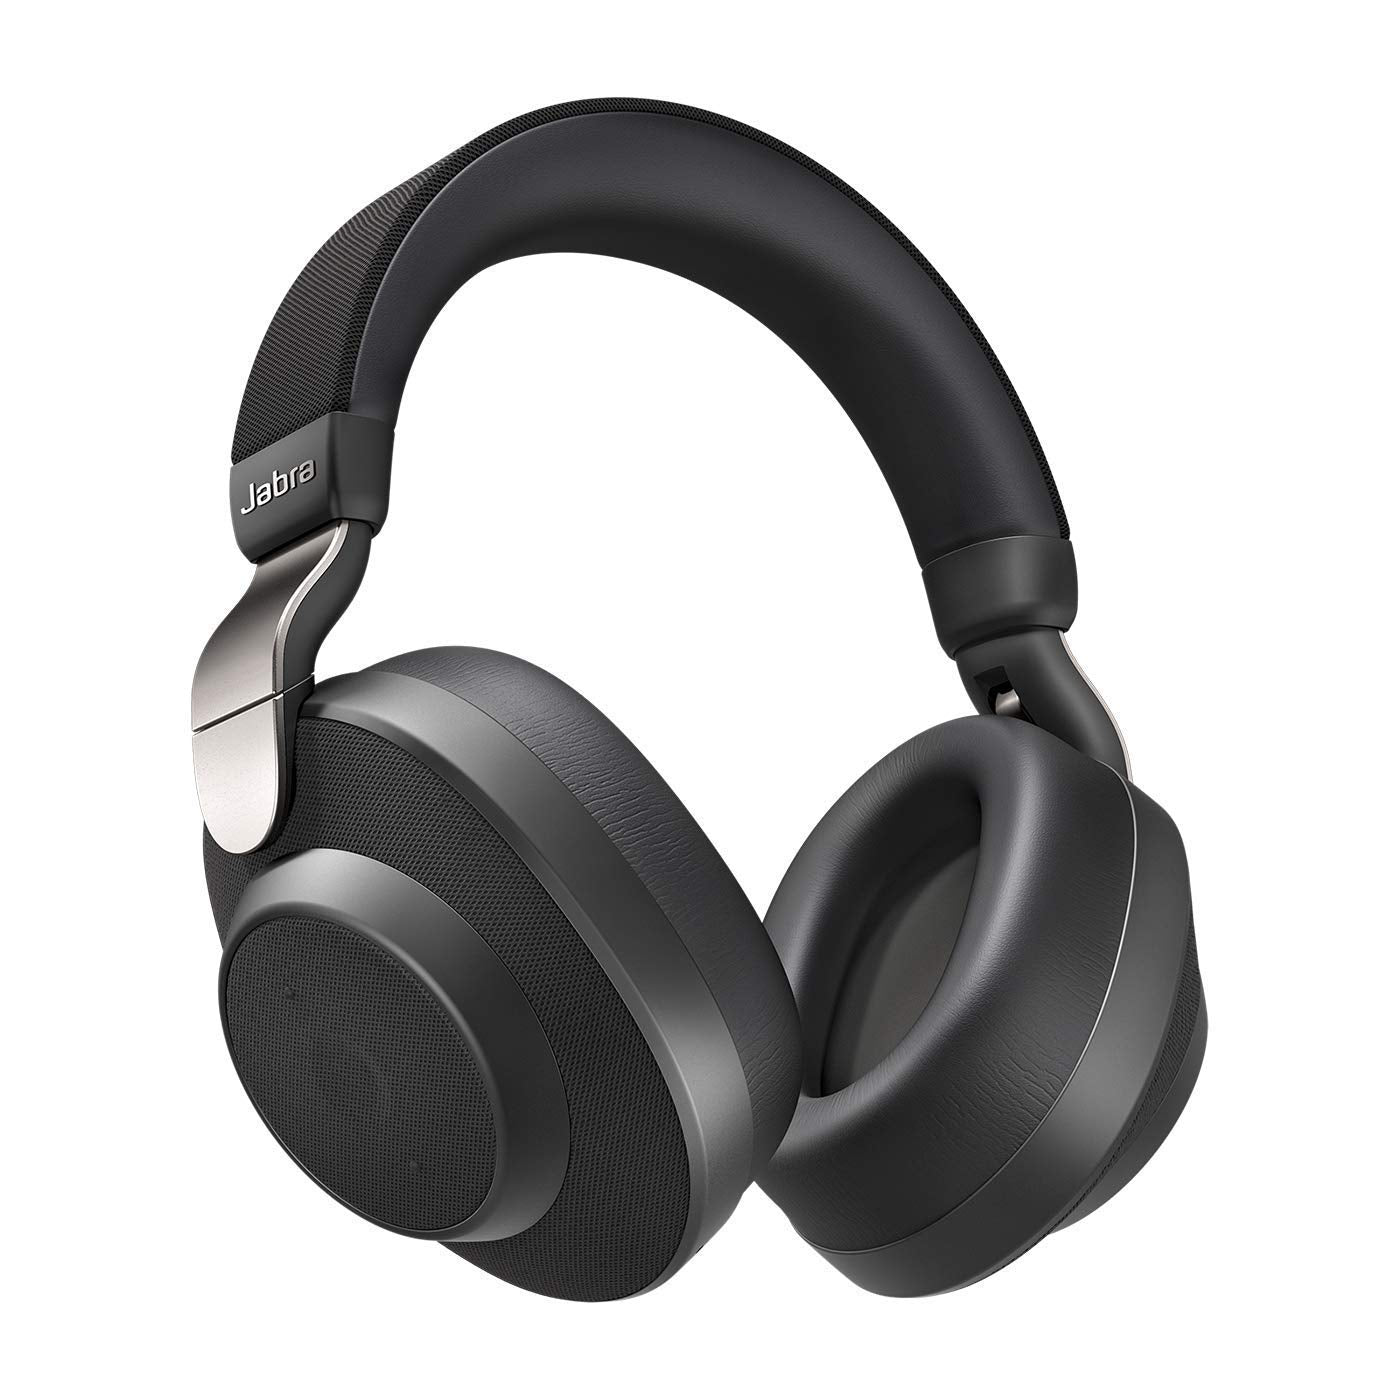 Jabra Elite 85h Bluetooth Over Ear Headphones with ANC and SmartSound Technology, Alexa Built-In